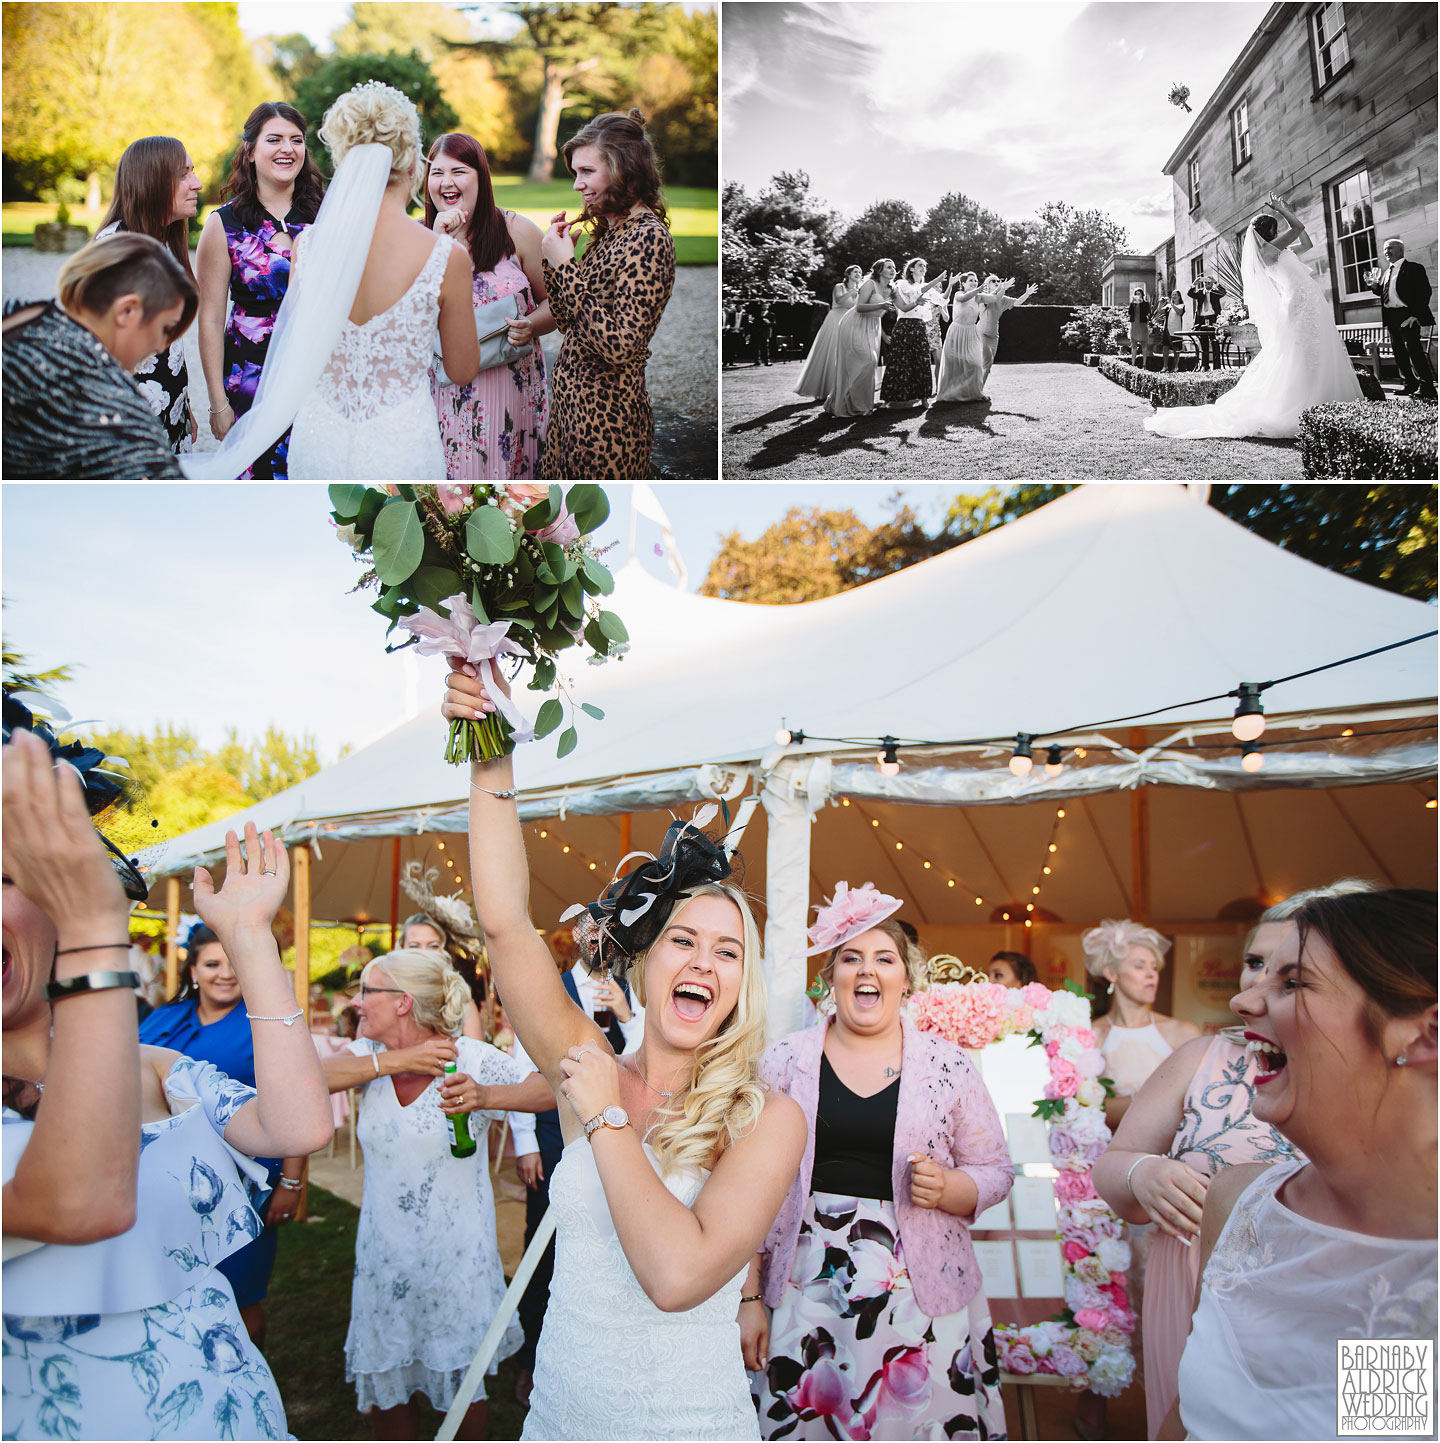 Throwing the bouquet at Saltmarshe Hall near Goole in East Yorkshire, Wedding photography at Saltmarshe Hall, East Yorkshire Wedding Photographer Barnaby Aldrick